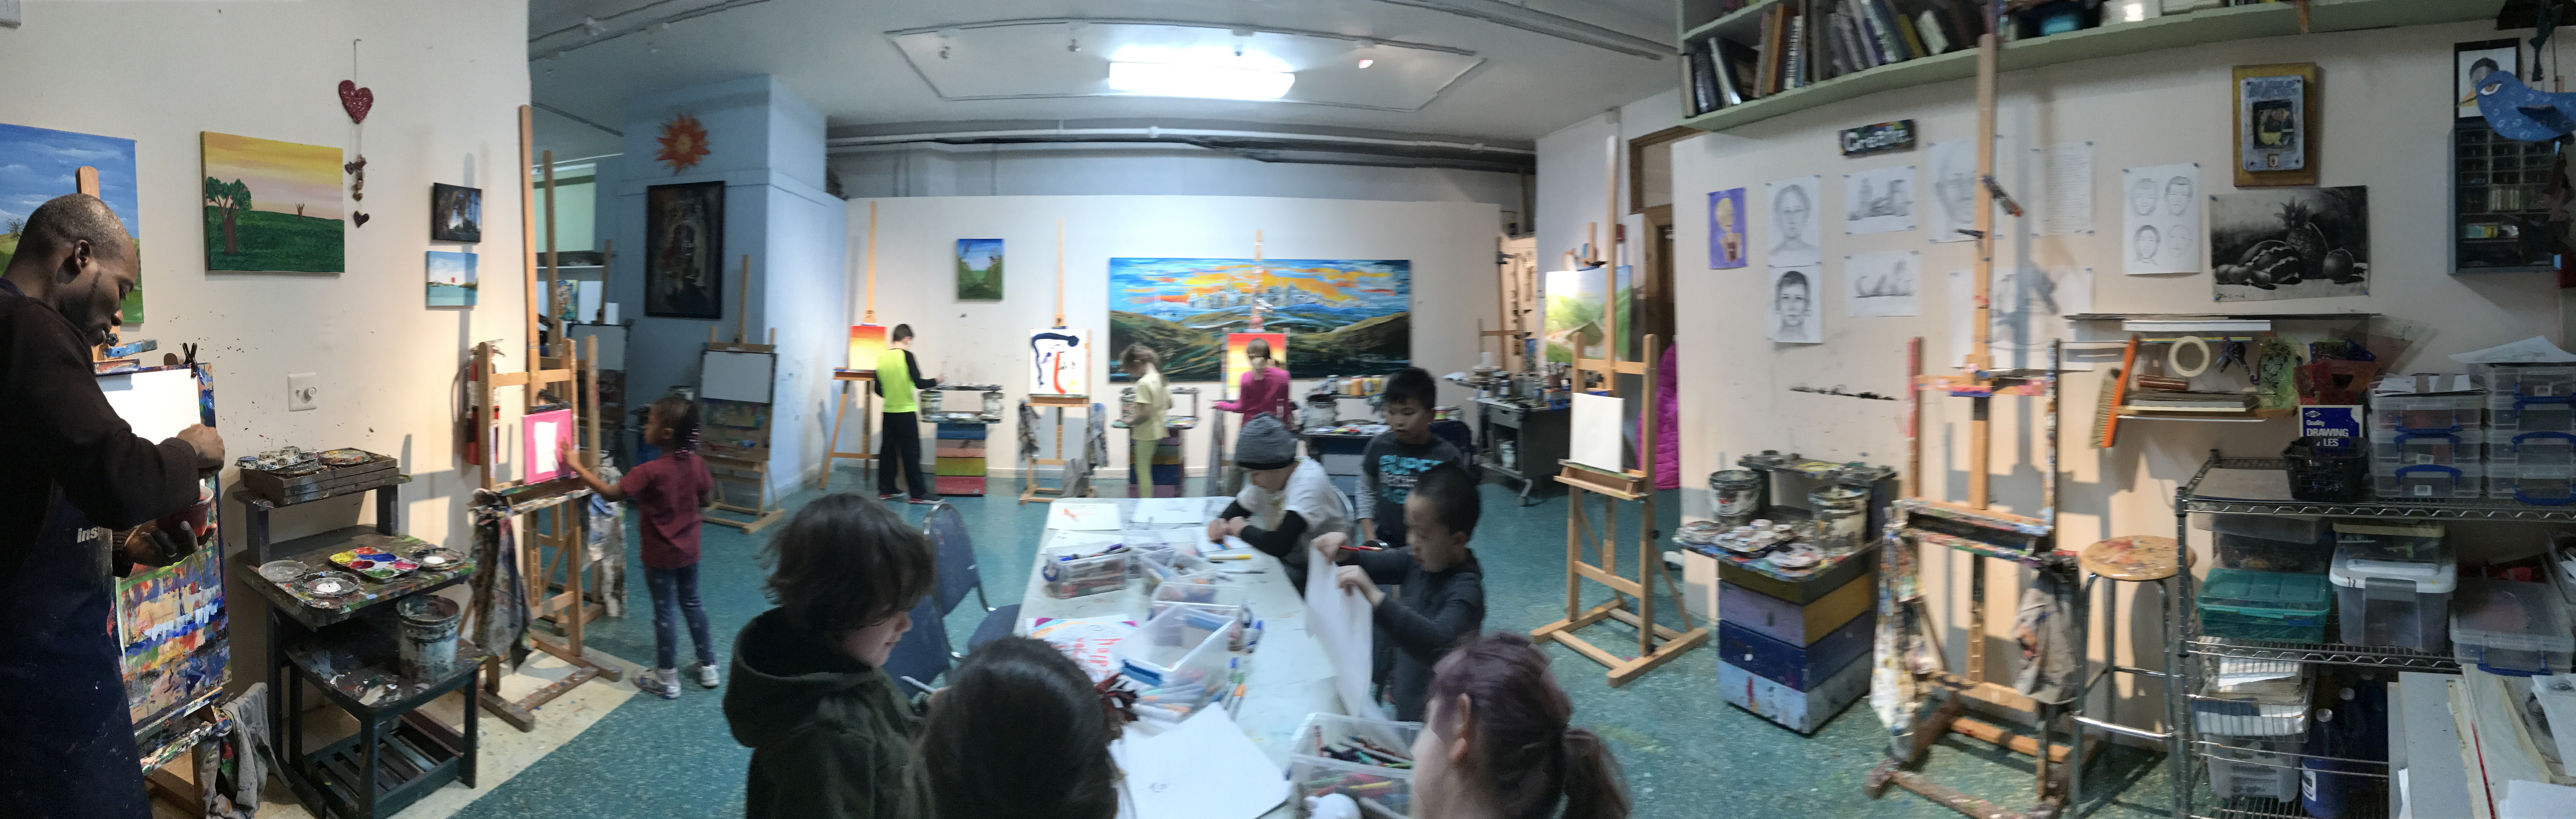 Art Classes for Kids Long Island NY